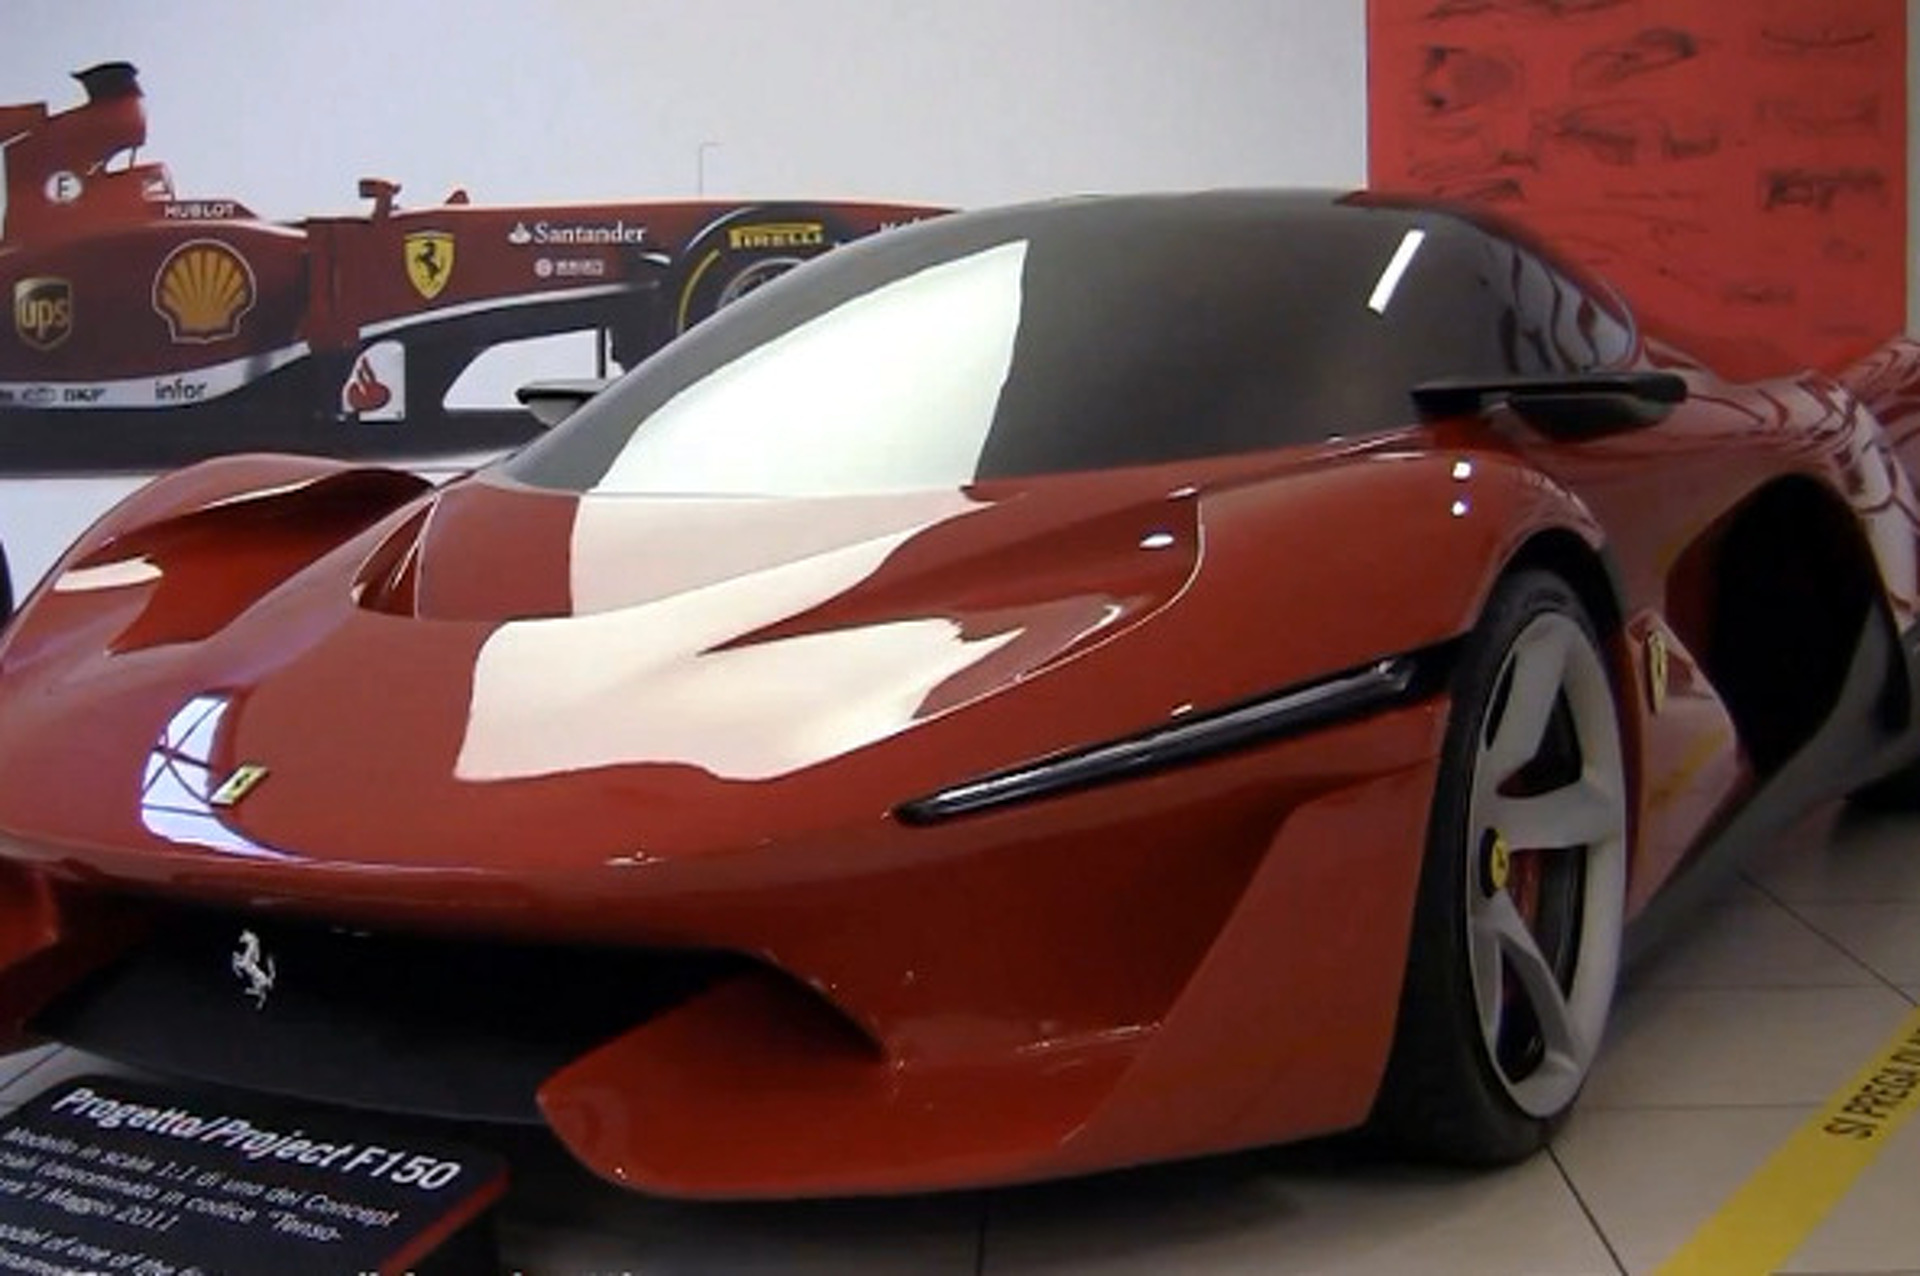 Ferrari Tensostruttura Is How LaFerrari Came to Be